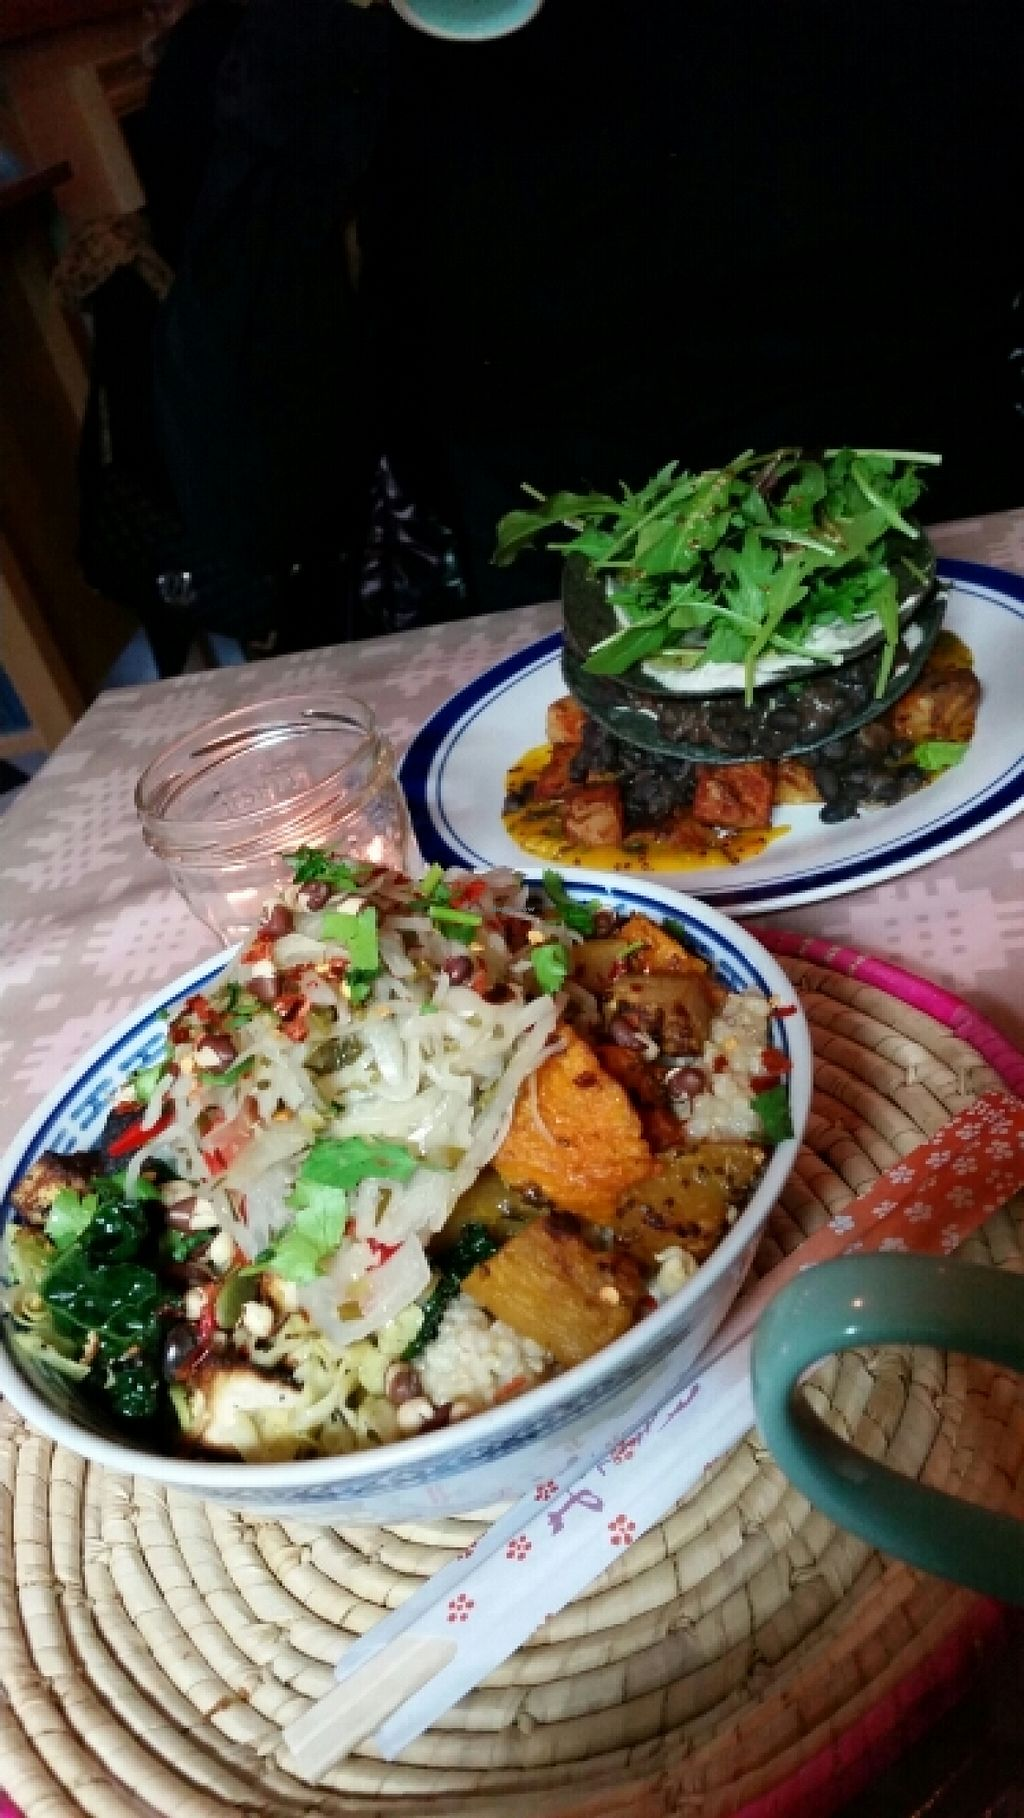 """Photo of Milgi  by <a href=""""/members/profile/konlish"""">konlish</a> <br/>Korean Rice Dish  and Mexican purple corn tortillas  <br/> May 7, 2016  - <a href='/contact/abuse/image/24701/147902'>Report</a>"""